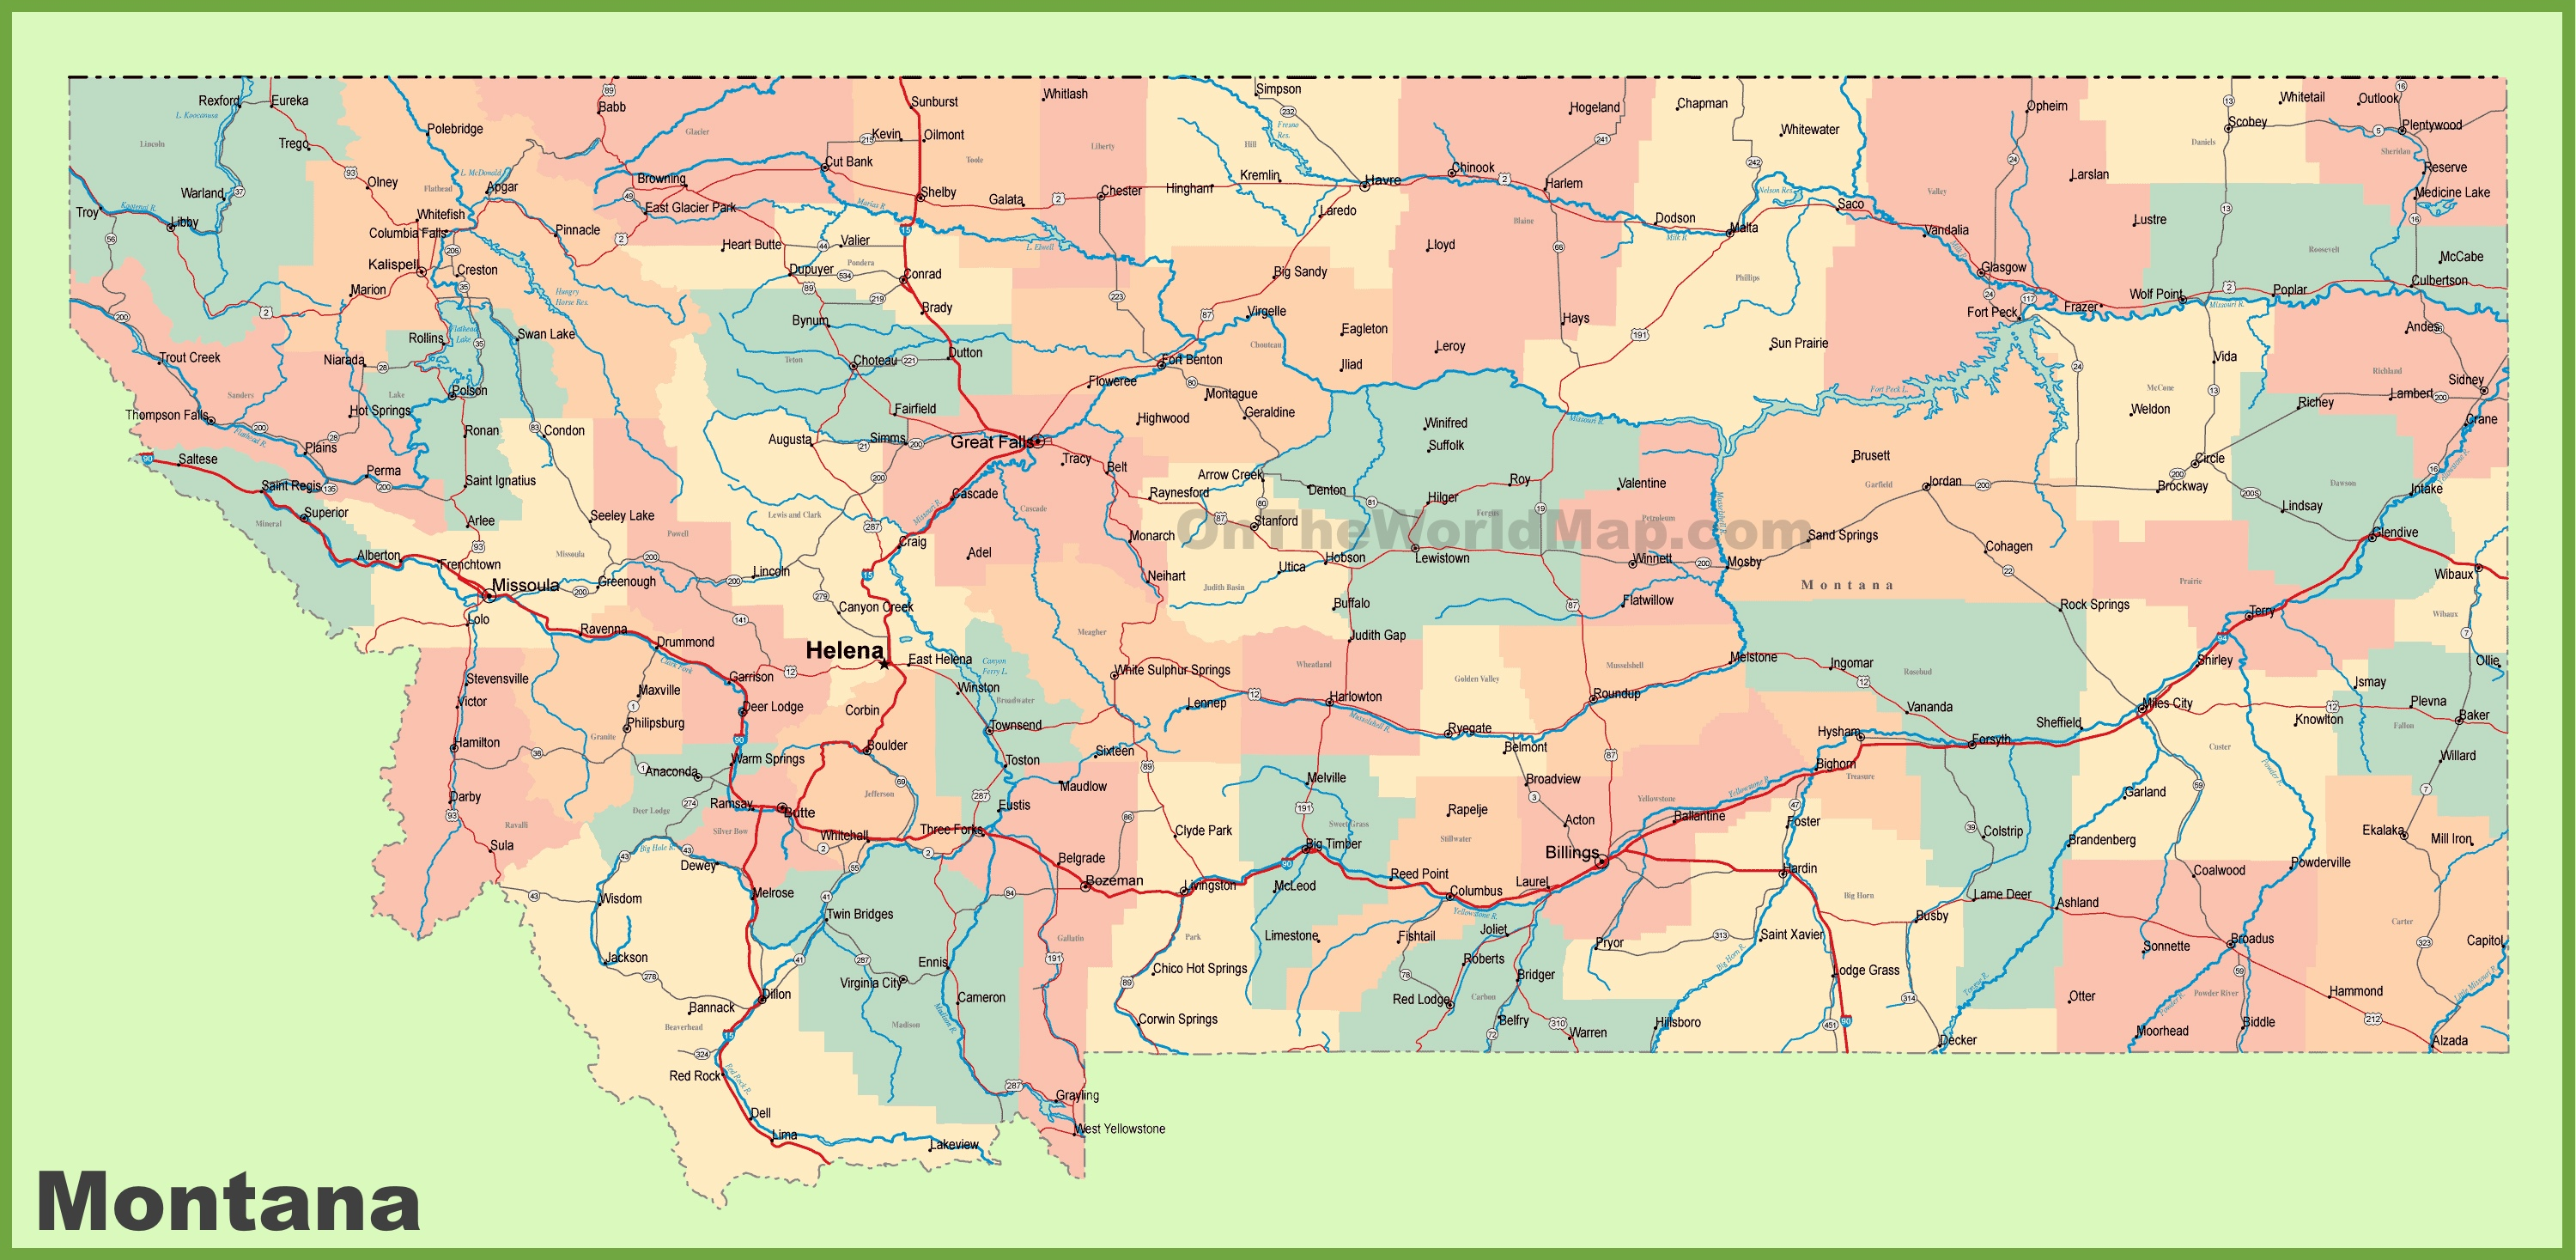 Road Map Of Montana With Cities - Map of montana with cities